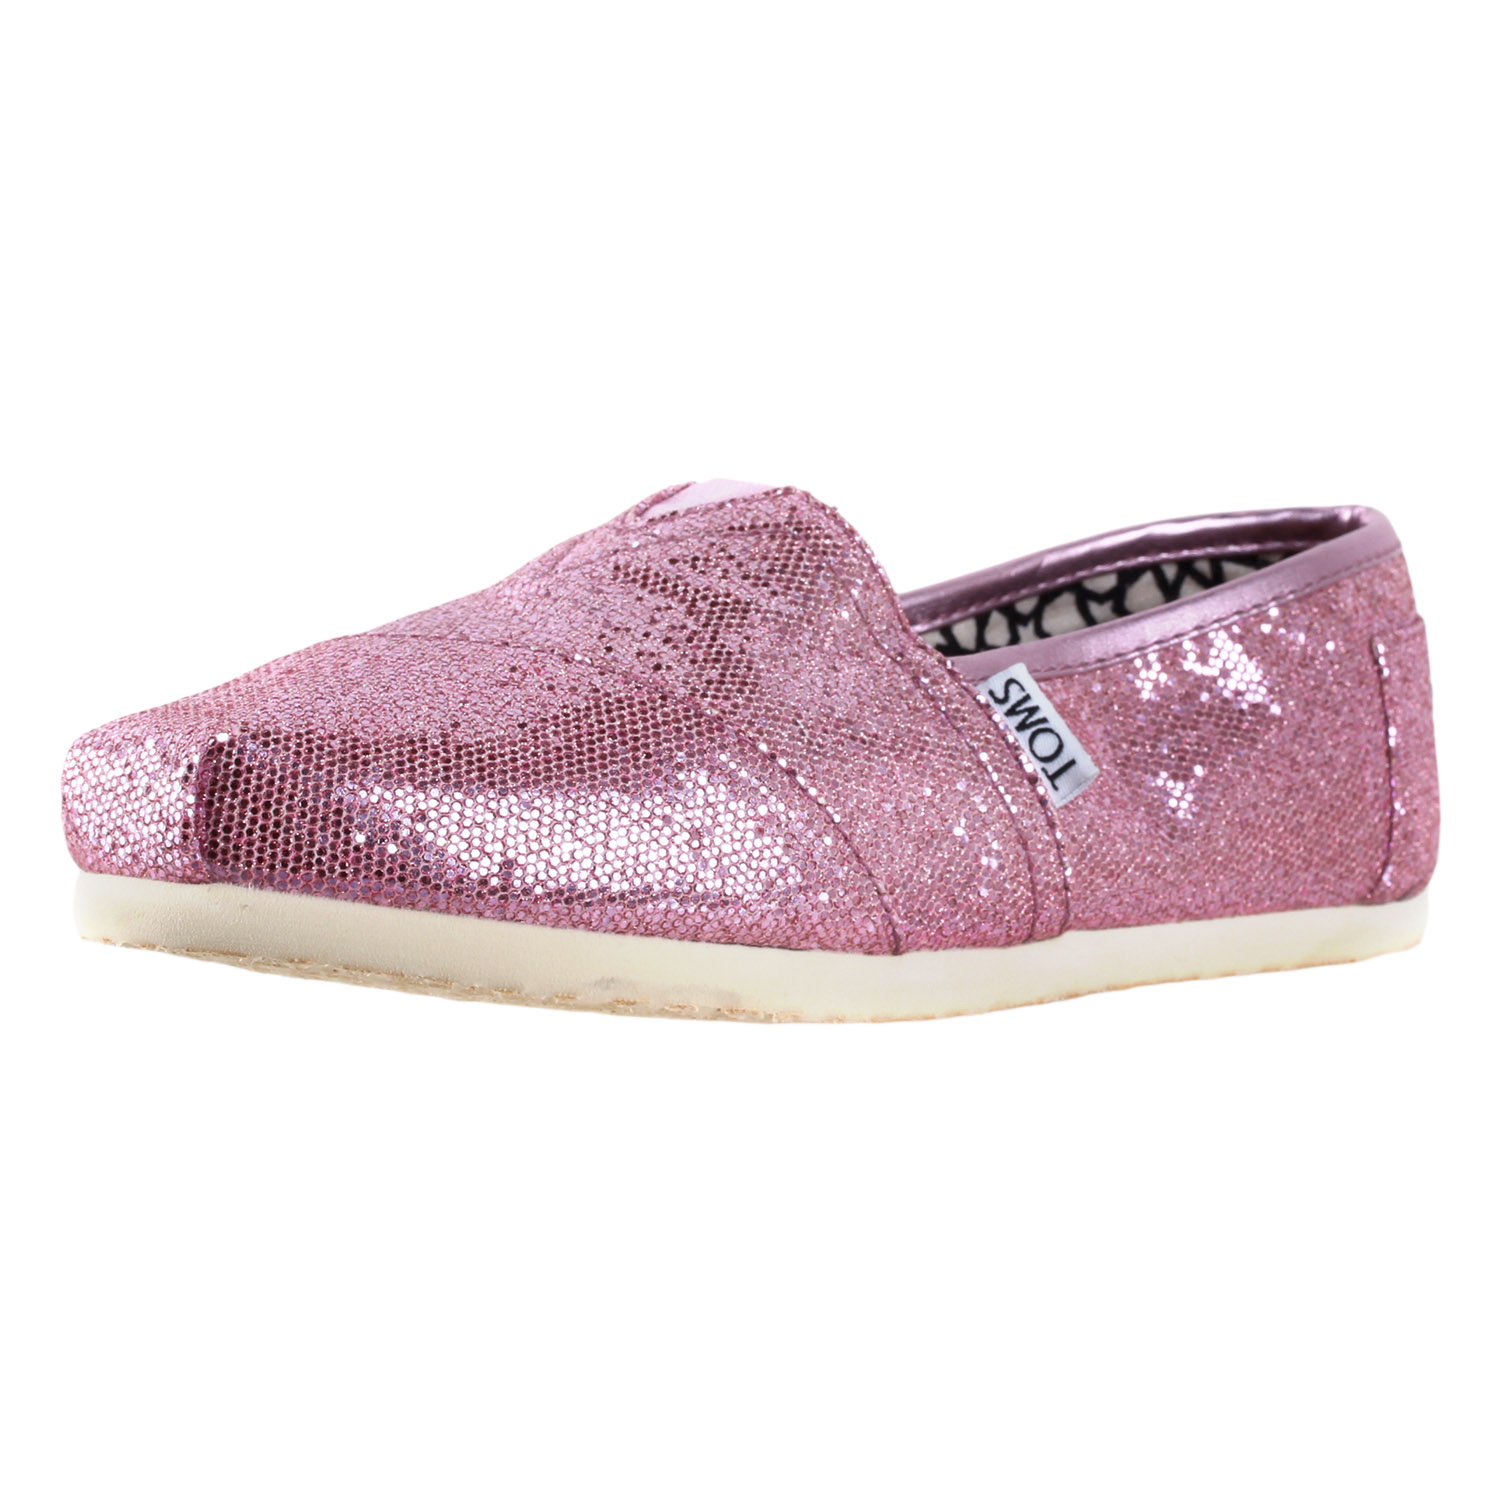 2e0780bebd1 Toms womens classics slip on glitter shoes pink JPG 1500x1500 Purple glitter  toms shoes